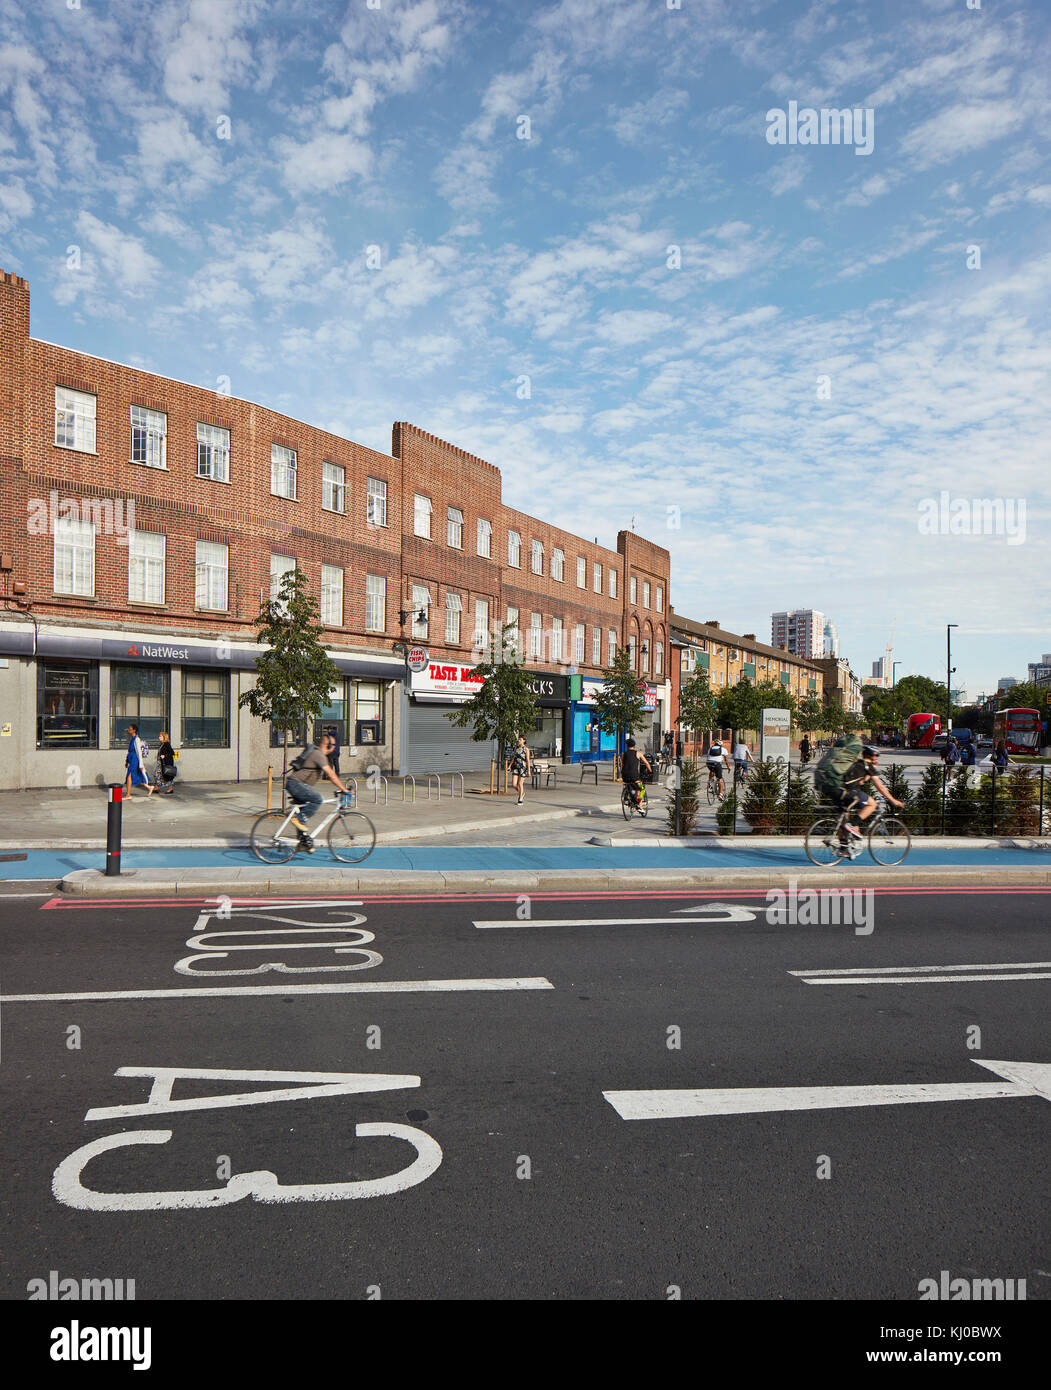 Intersection with new bicycle lane. Stockwell Framework Masterplan, London, United Kingdom. Architect: DSDHA, 2017. - Stock Image